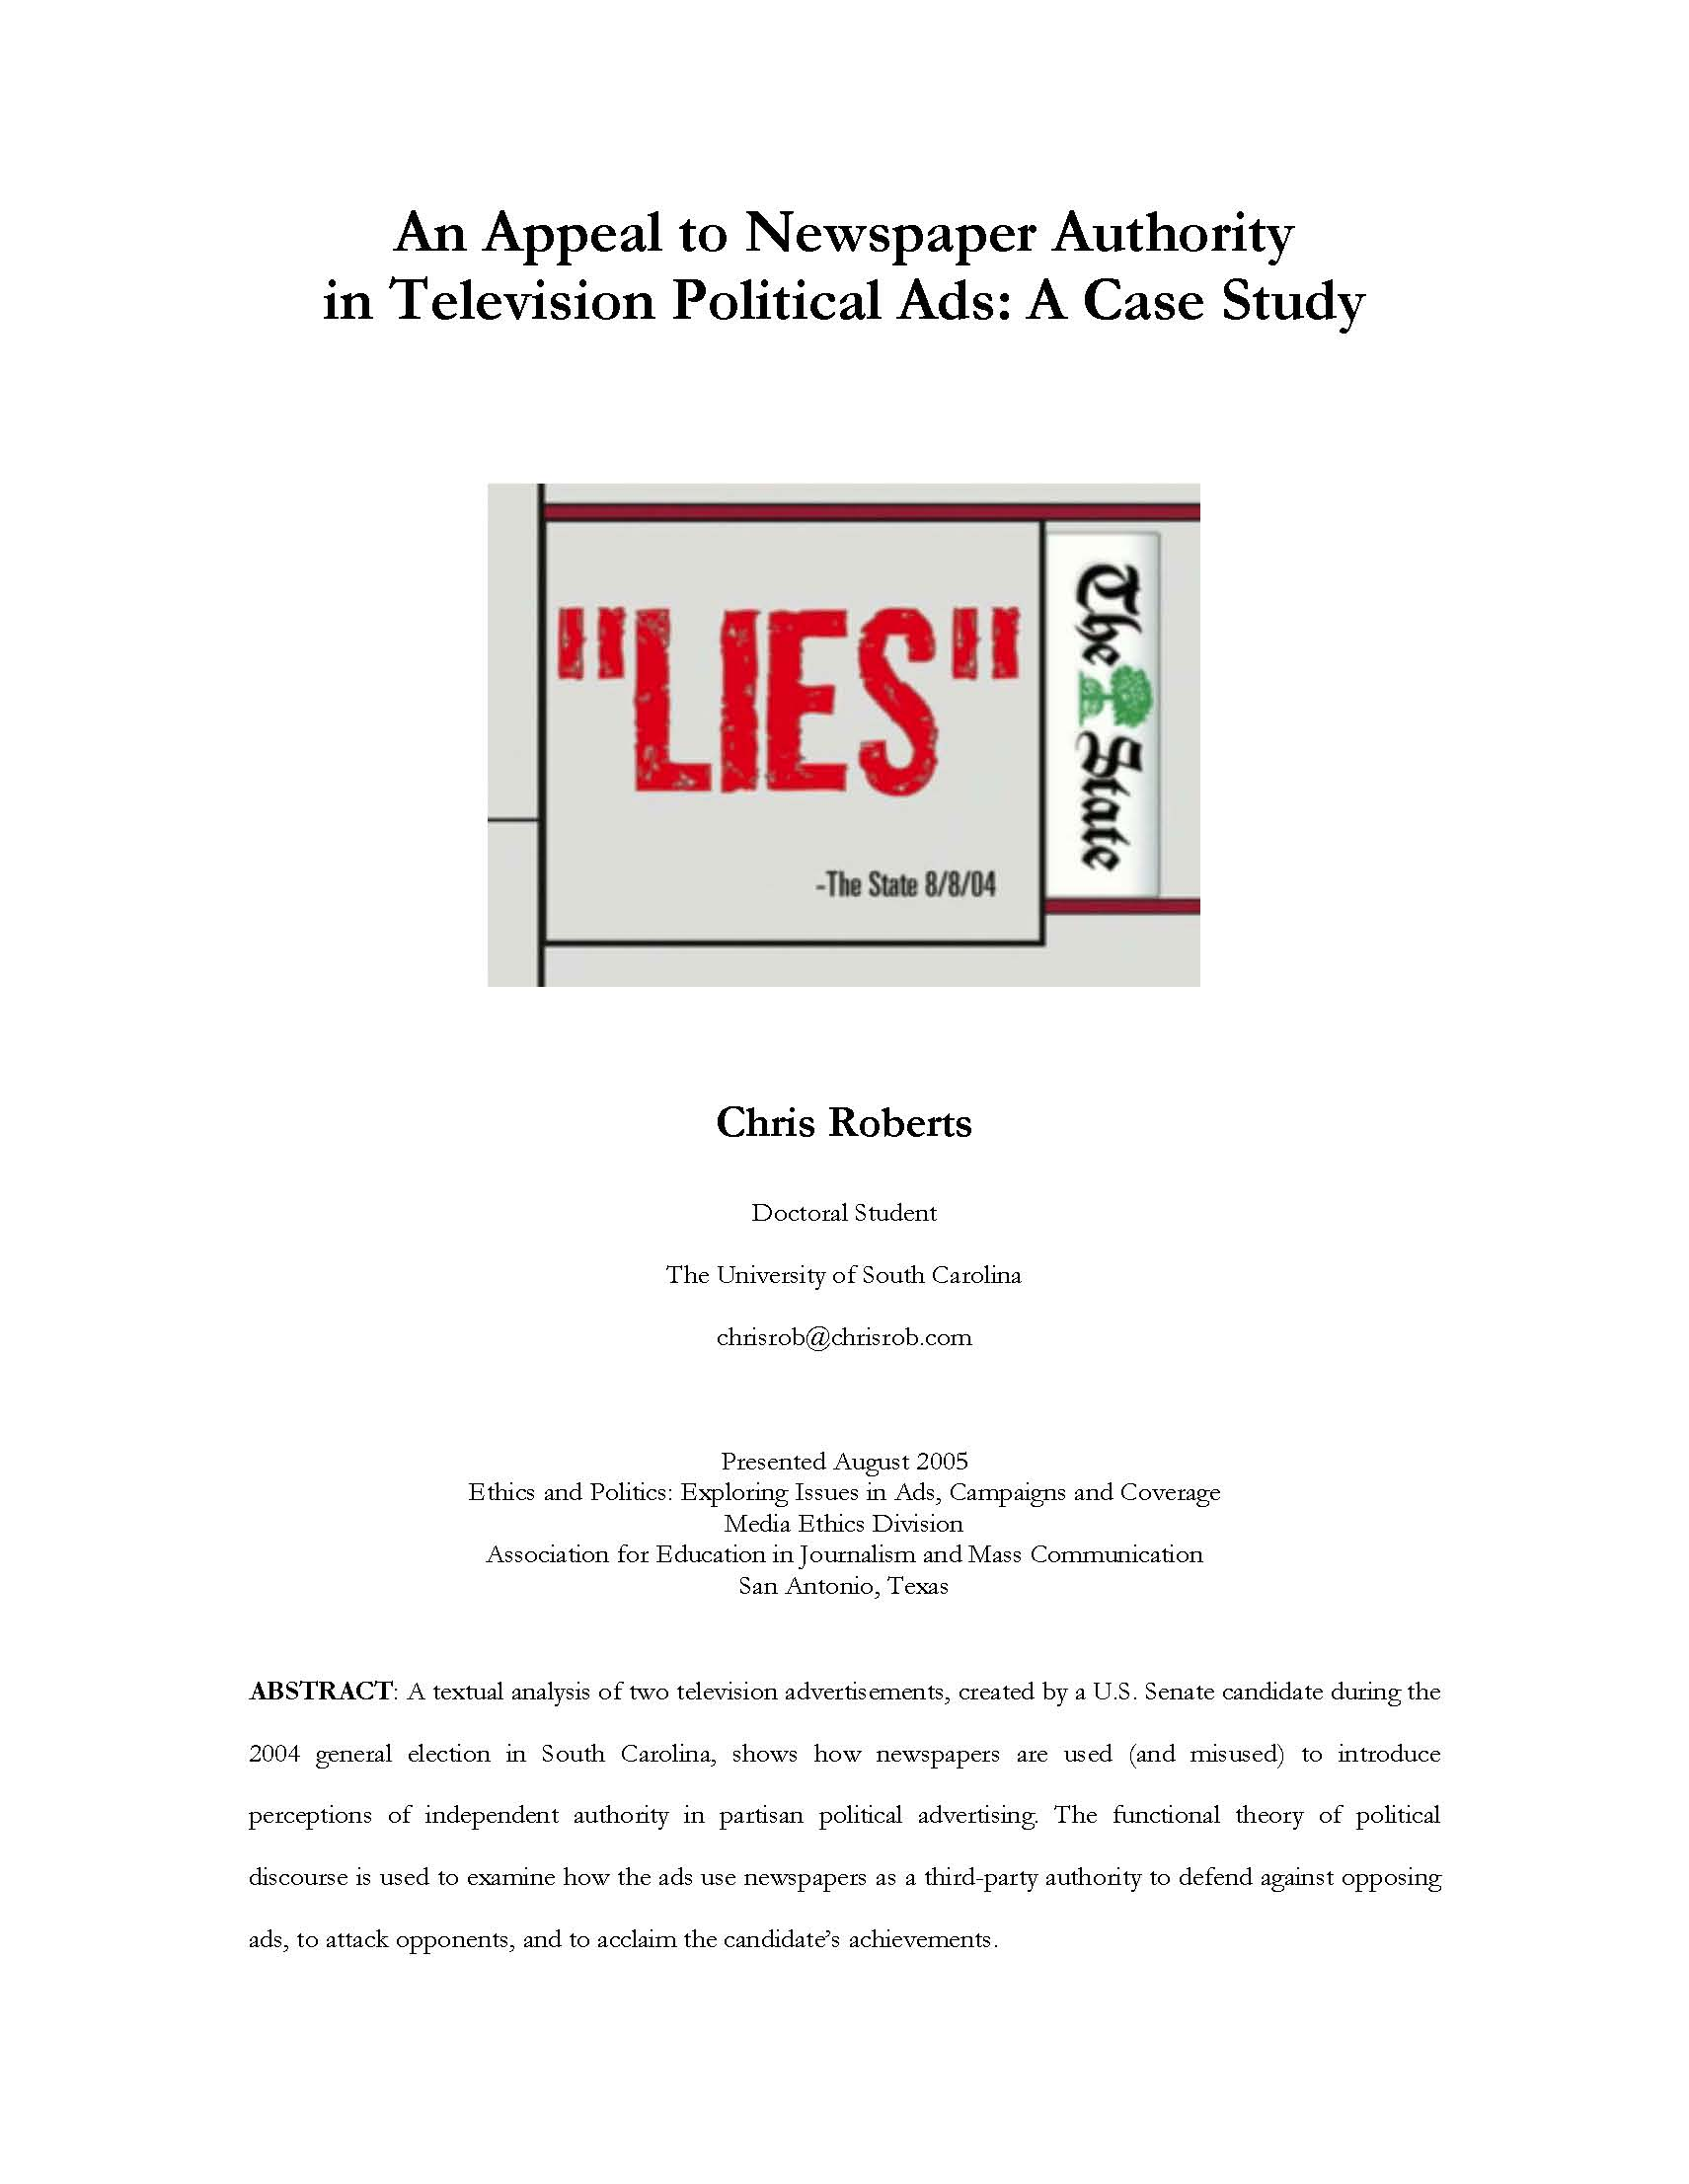 An Appeal to Newspaper Authority  in Television Political Ads: A Case Study